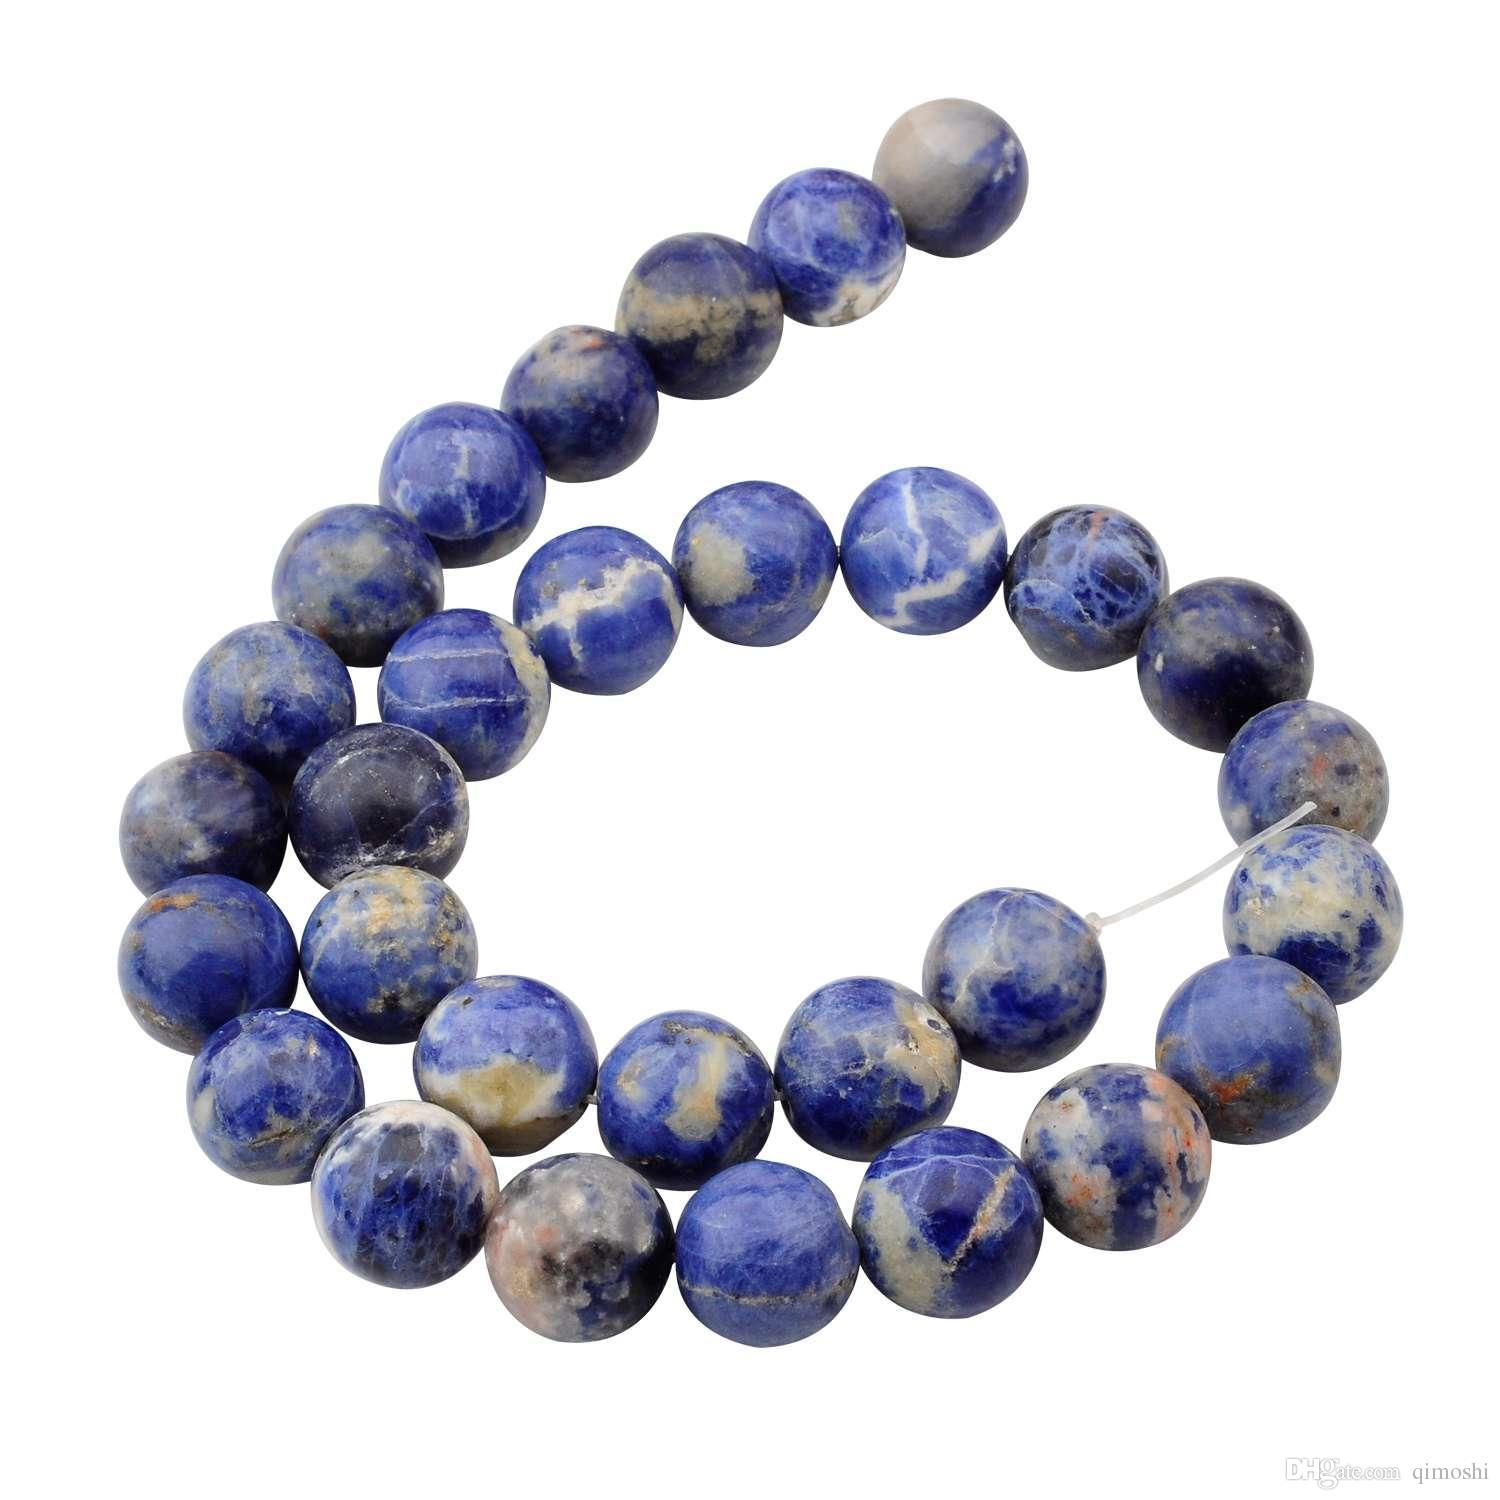 wholesale in bulk estimate get il dyed howlite shipping listing heart beads for fullxfull sale buy